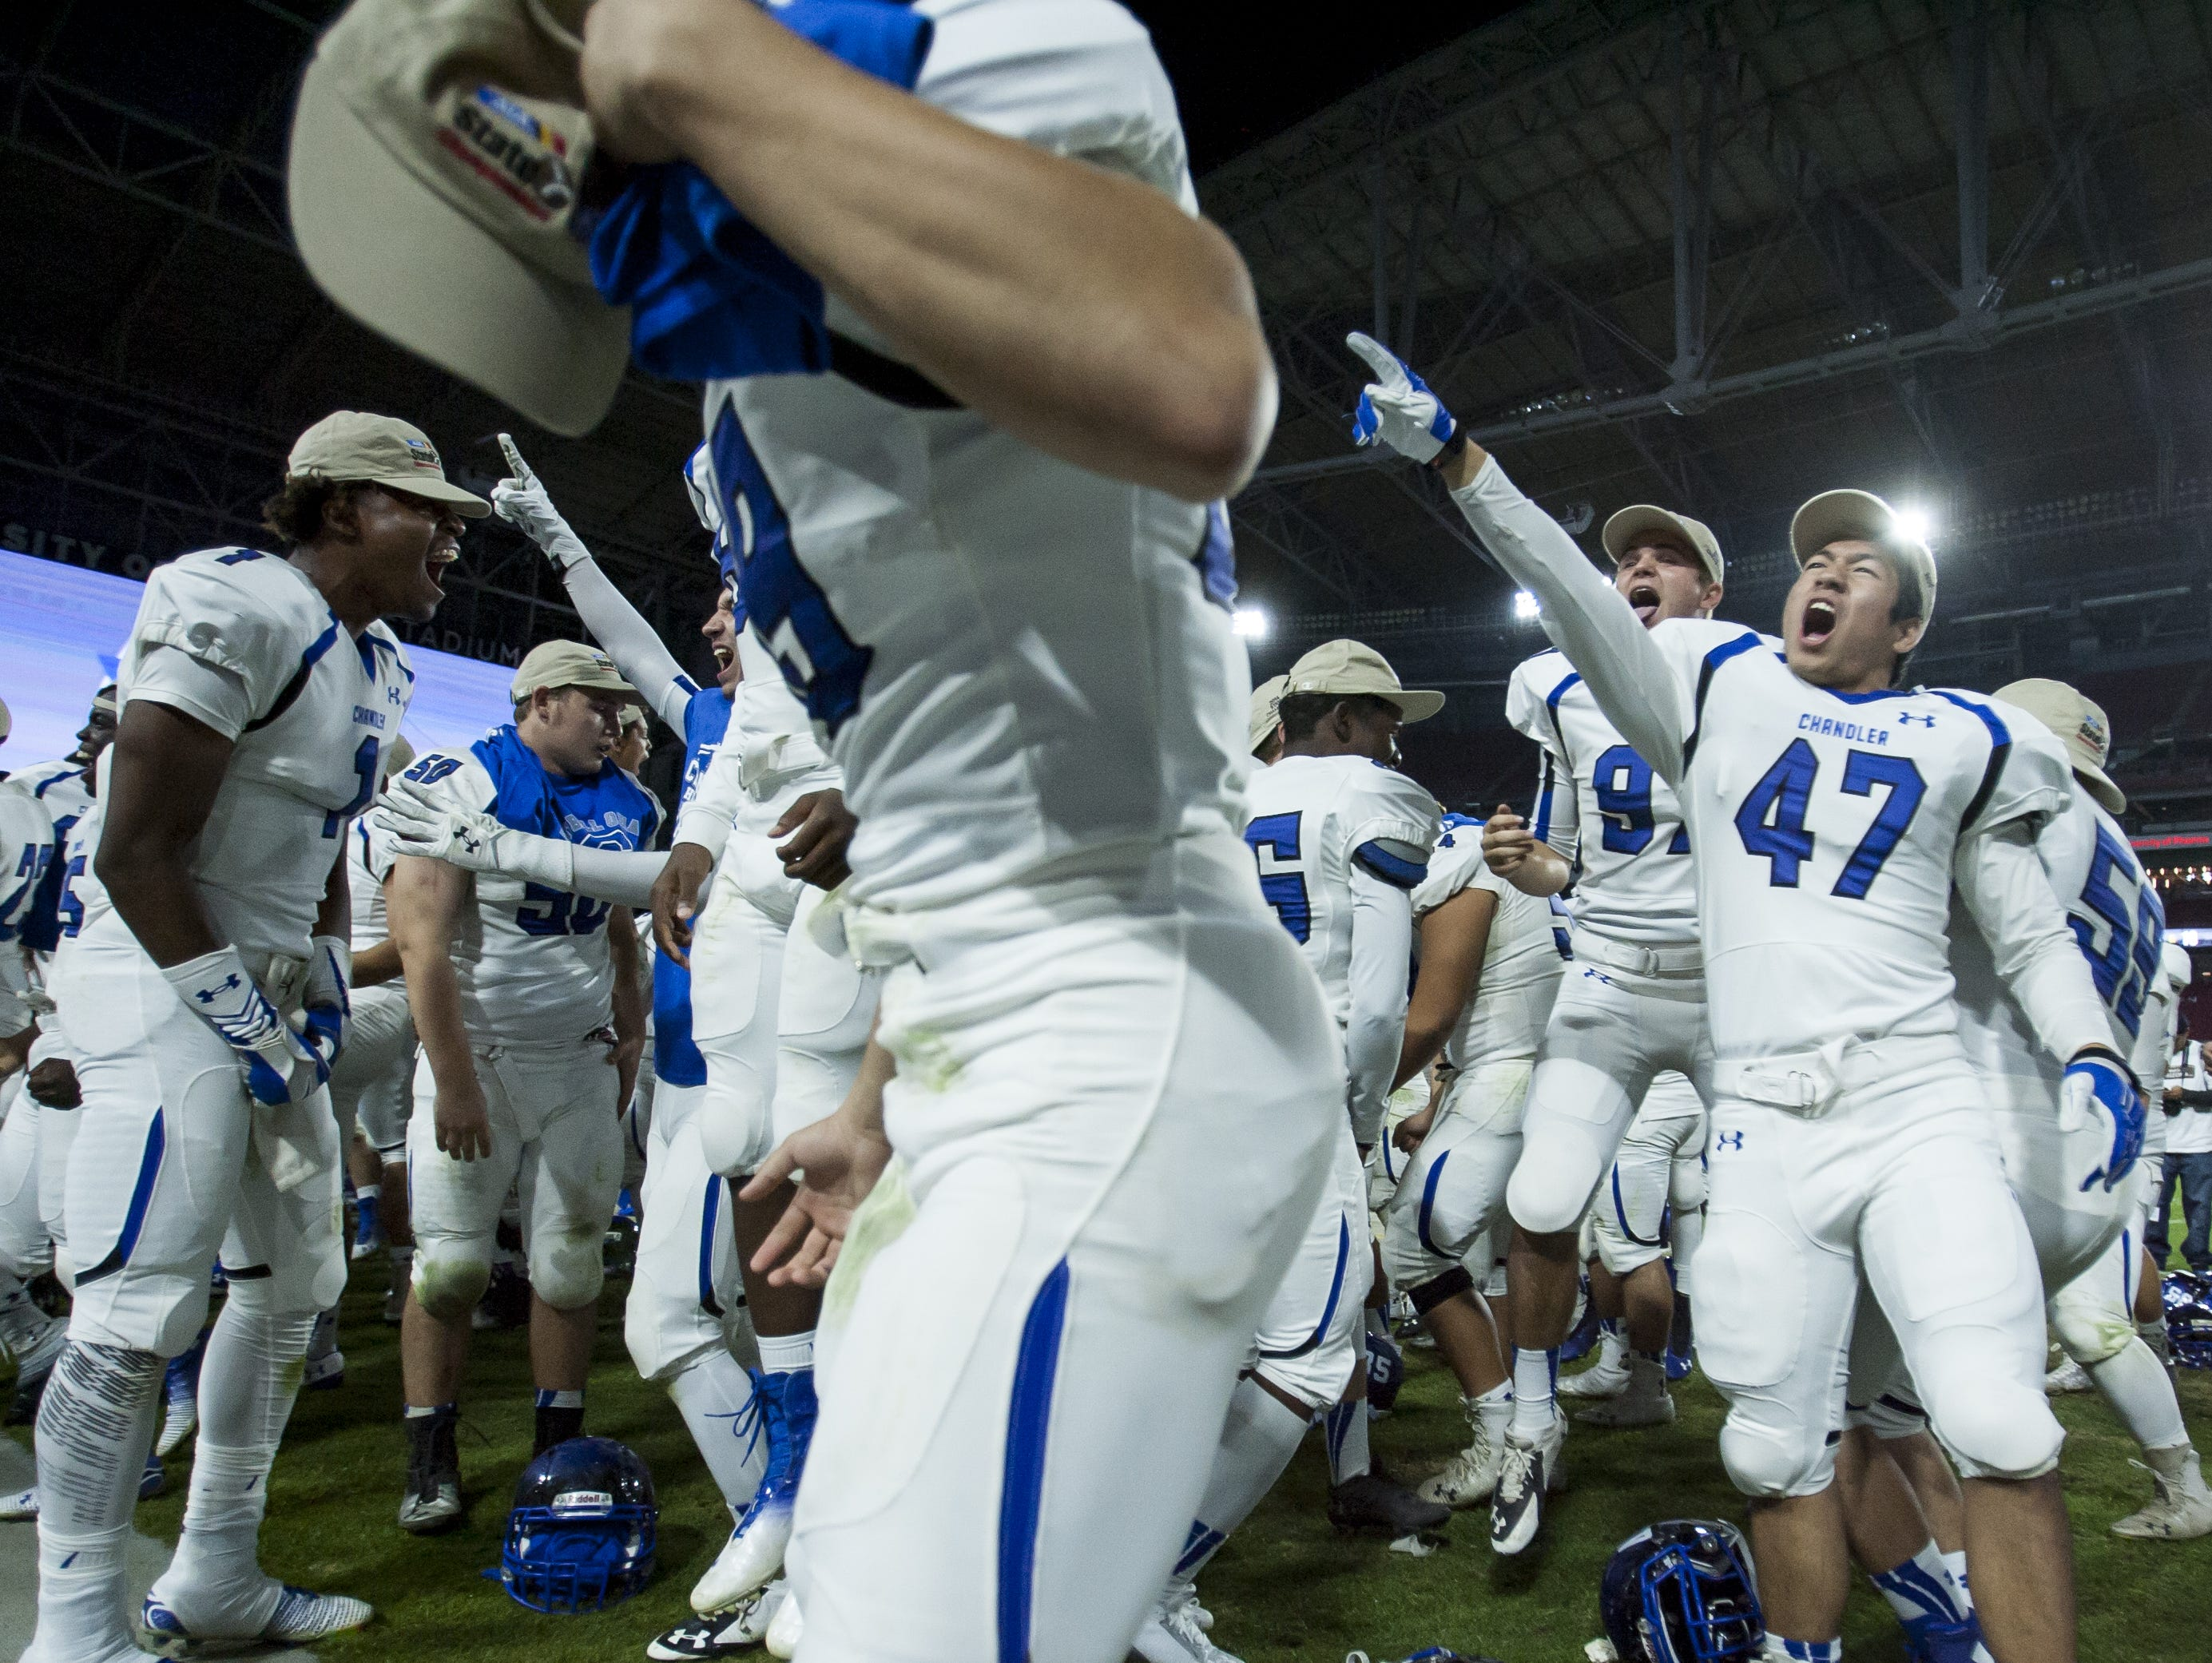 Chandler celebrates defeating Hamilton in the state championship game last season.